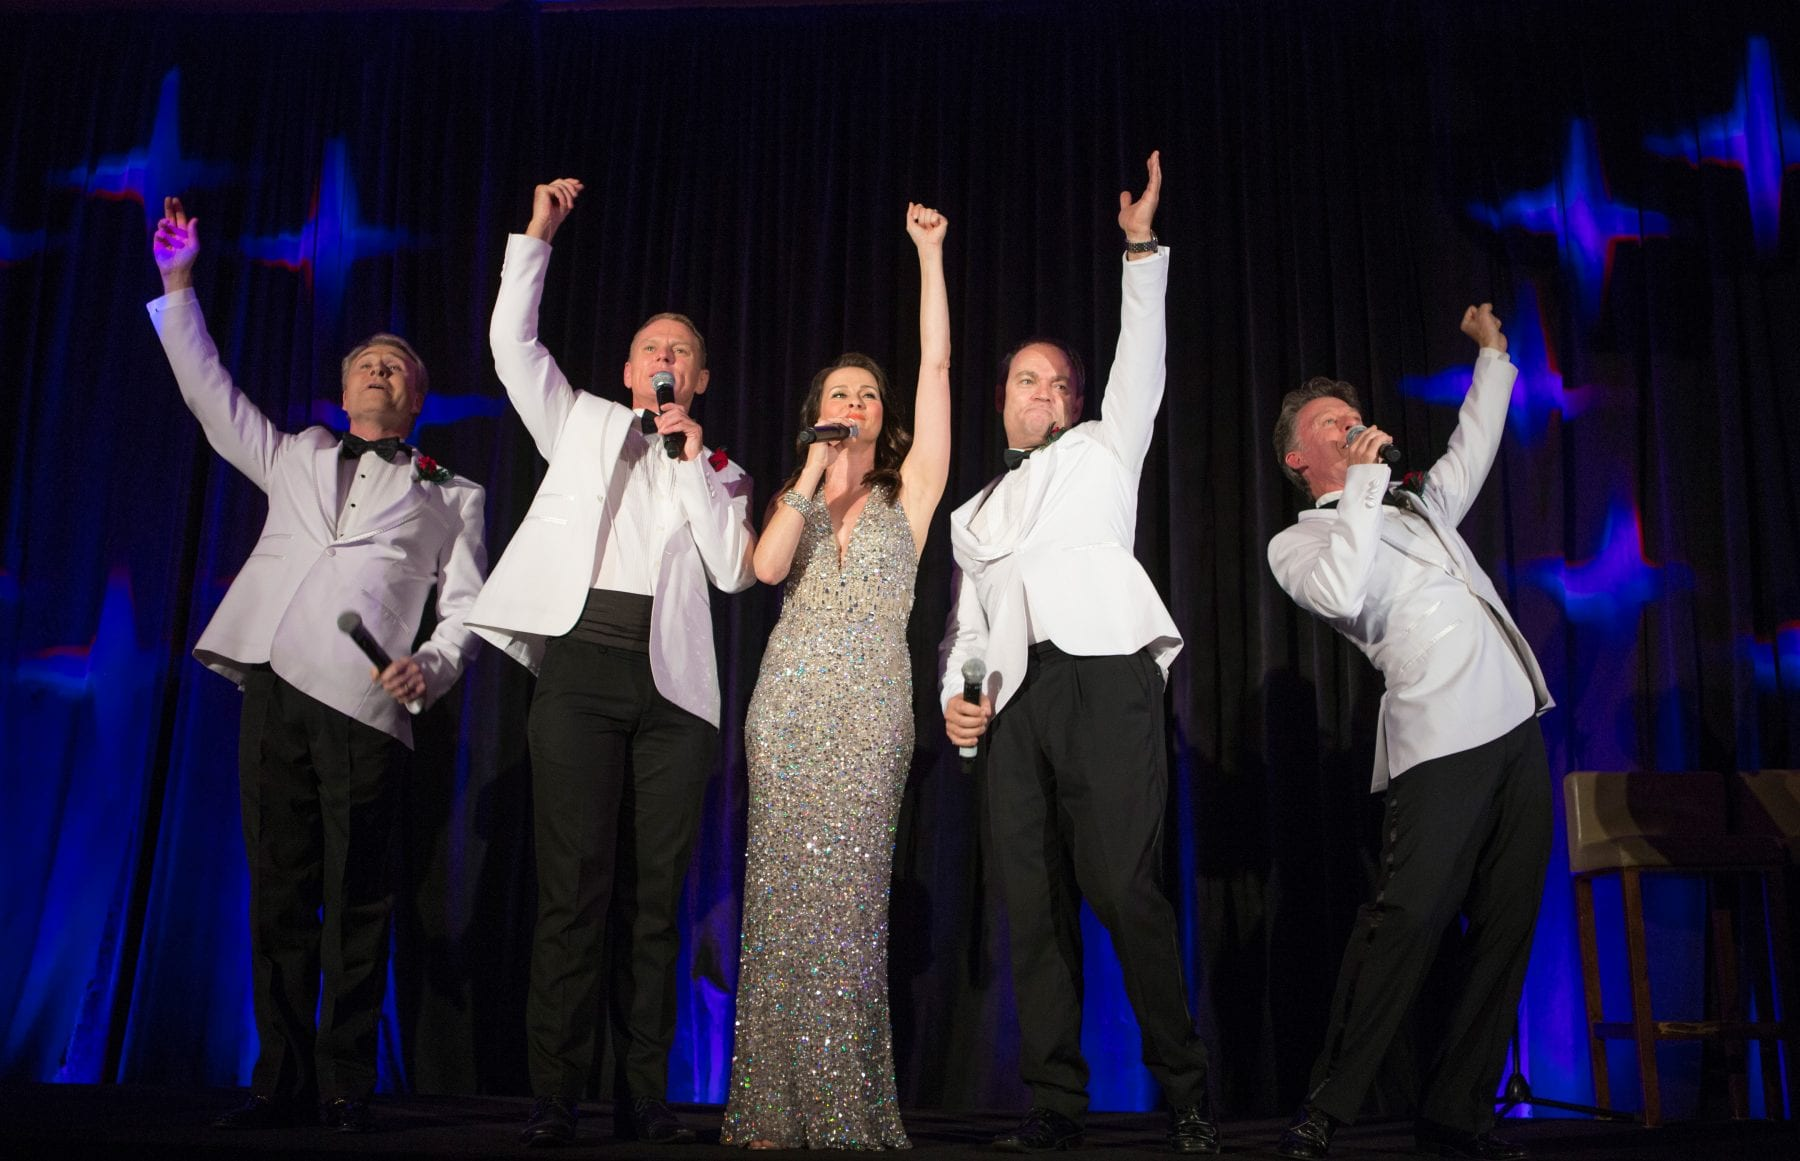 Lovegrove Entertainment - Corporate Gala for a Cause